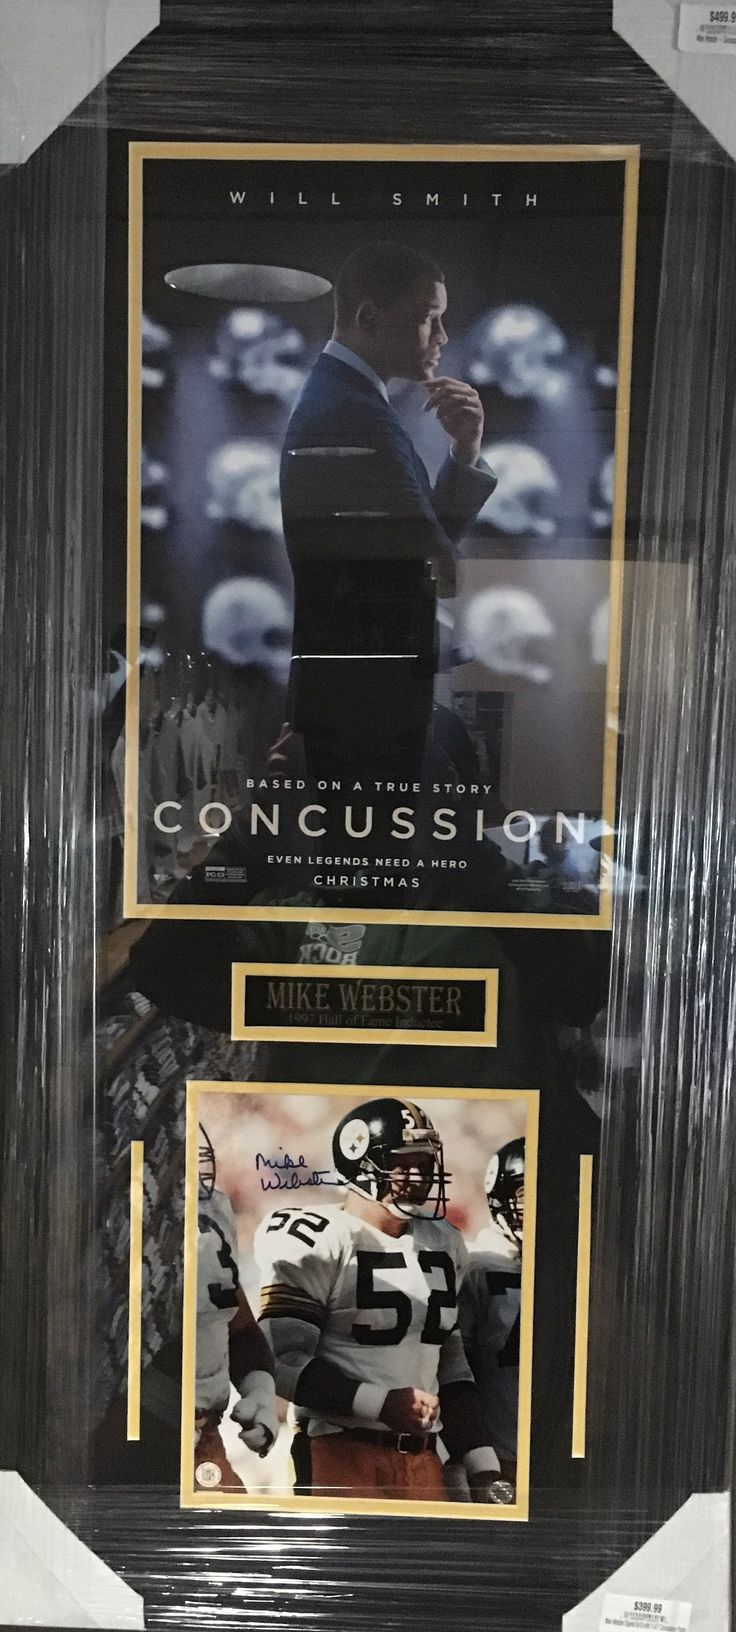 Mike Webster Signed 8x10 with 11x17 Concussion Poster - Professionally Framed